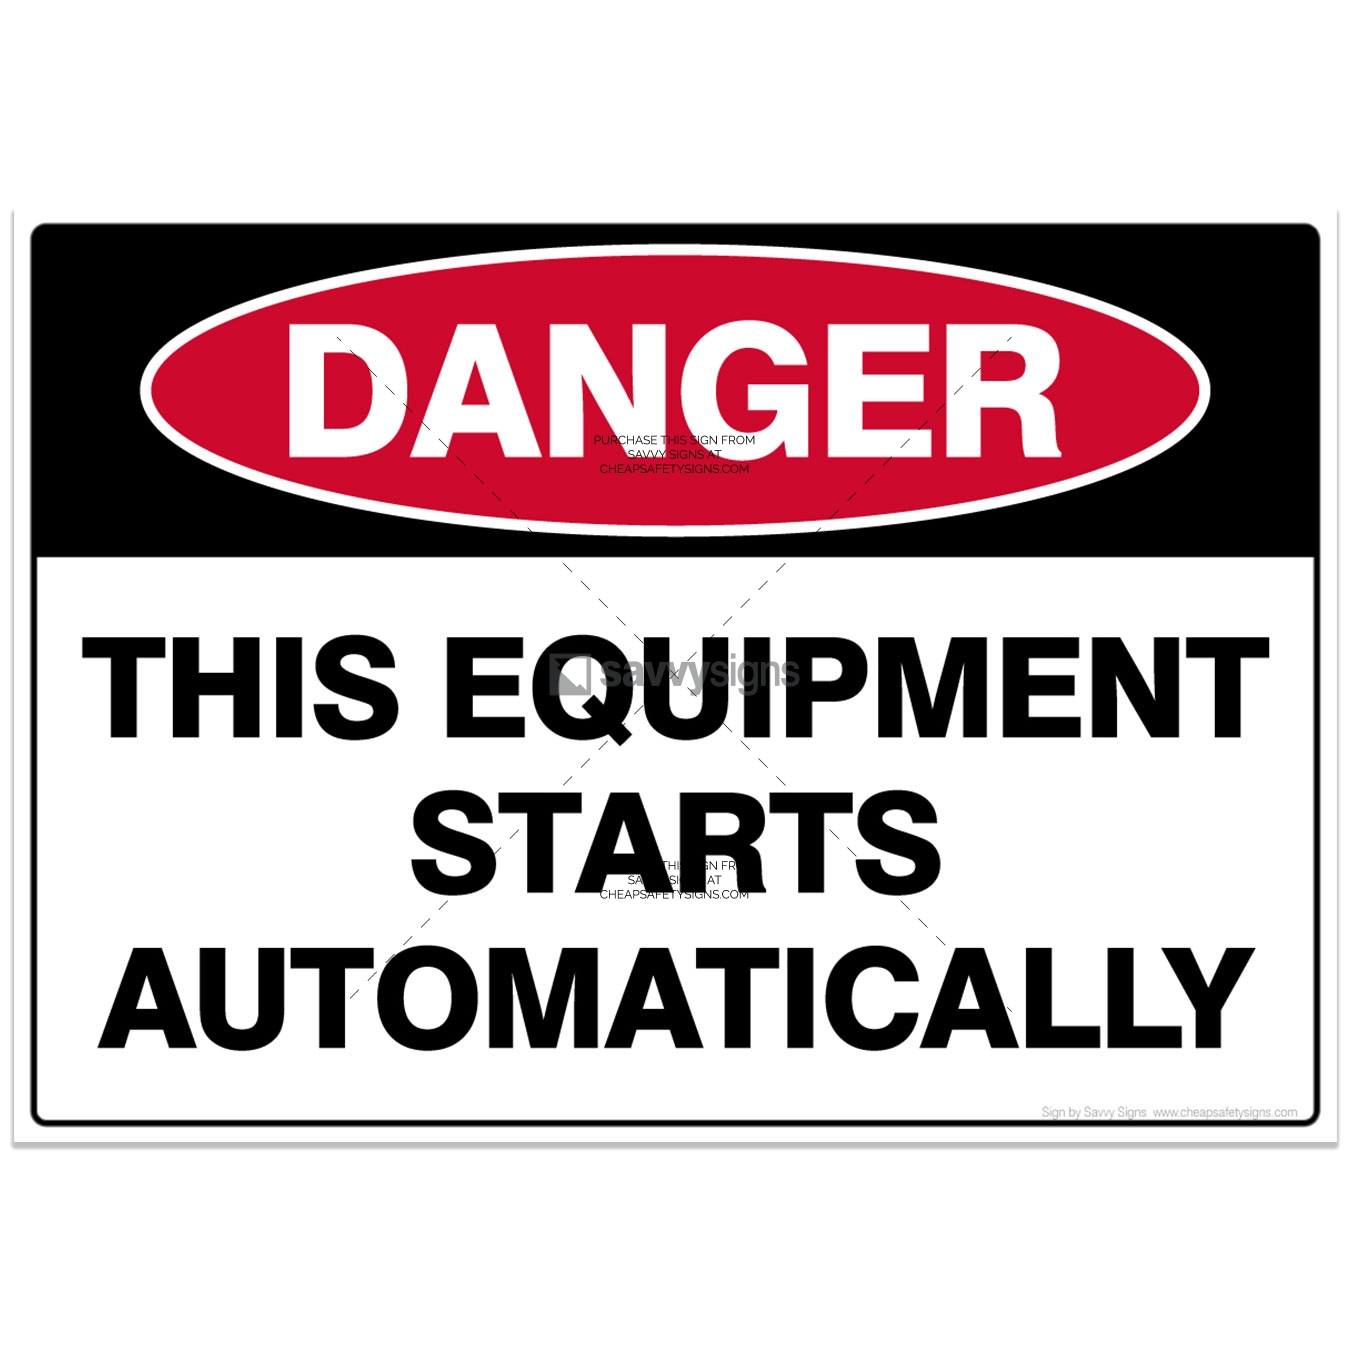 SSDAN3065-DANGER-Workplace-Safety-Signs_Savvy-Signs_v4.1